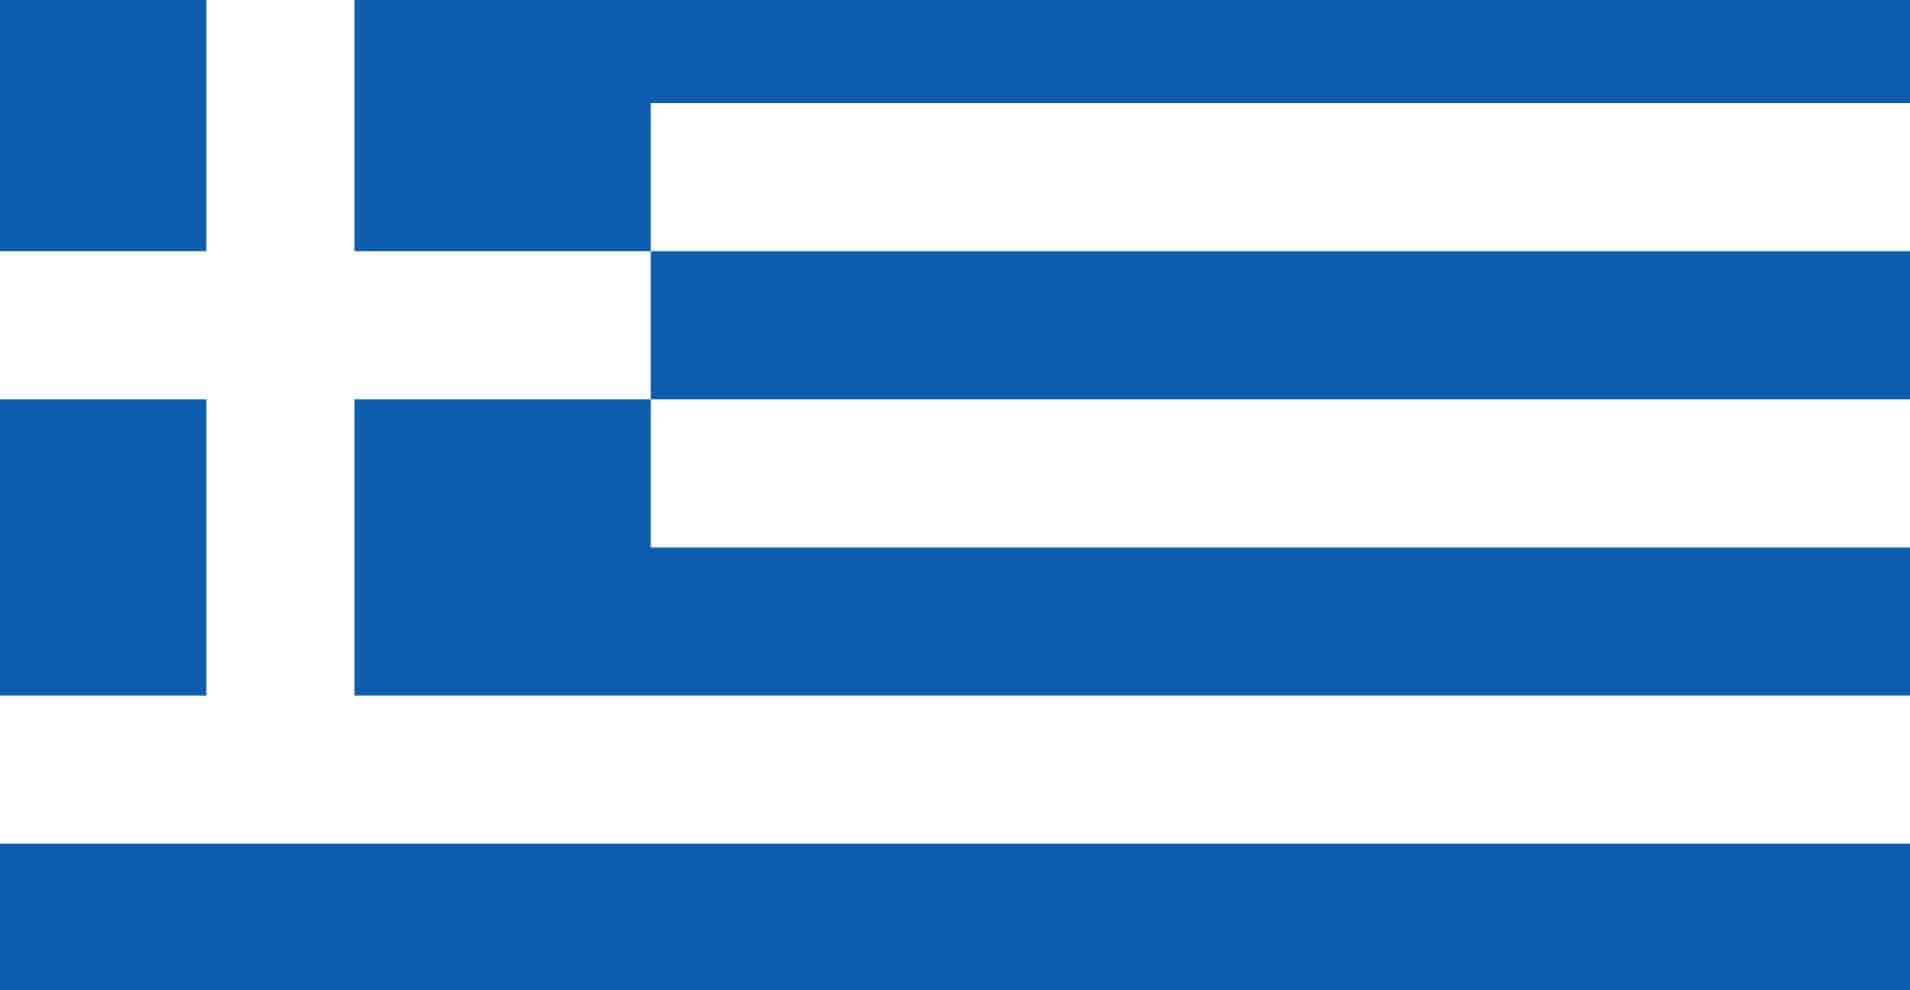 Greece flag _ Flag of Greece